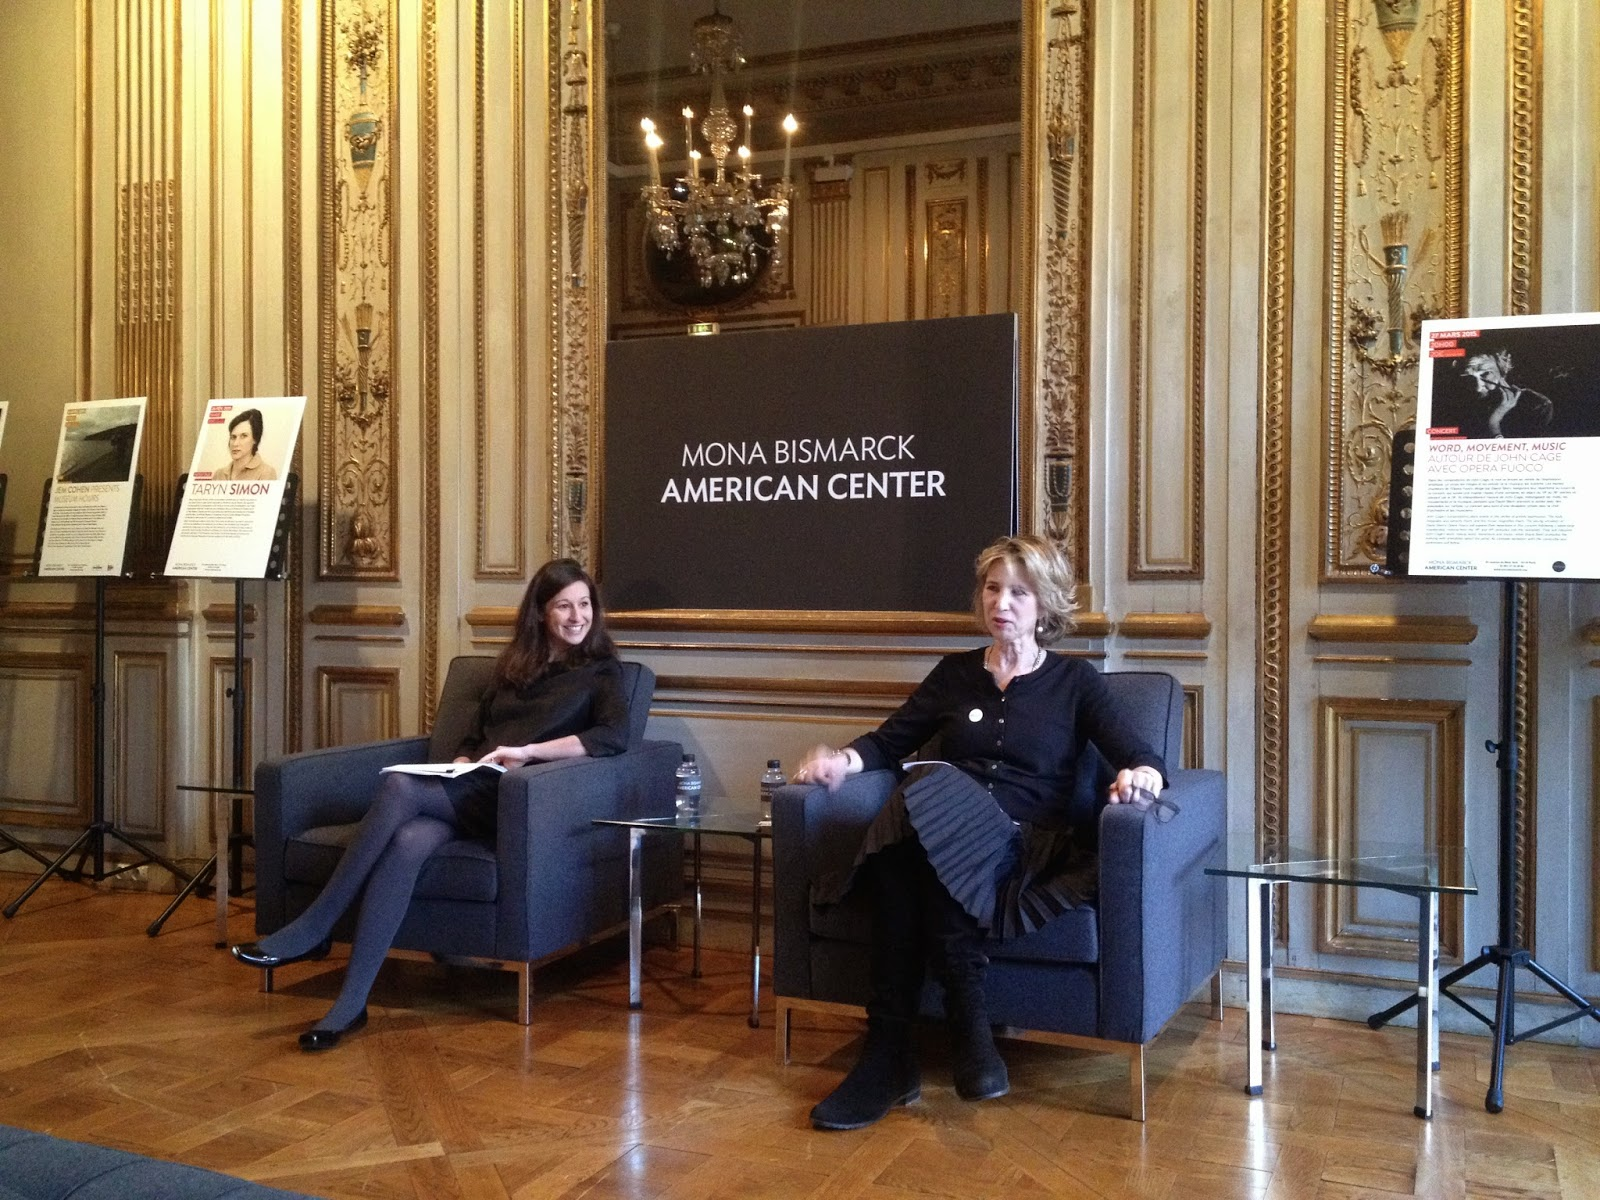 Danielle Berger Fortier (left) and Bianca Roberts (right), Mona Bismarck American Center, Paris